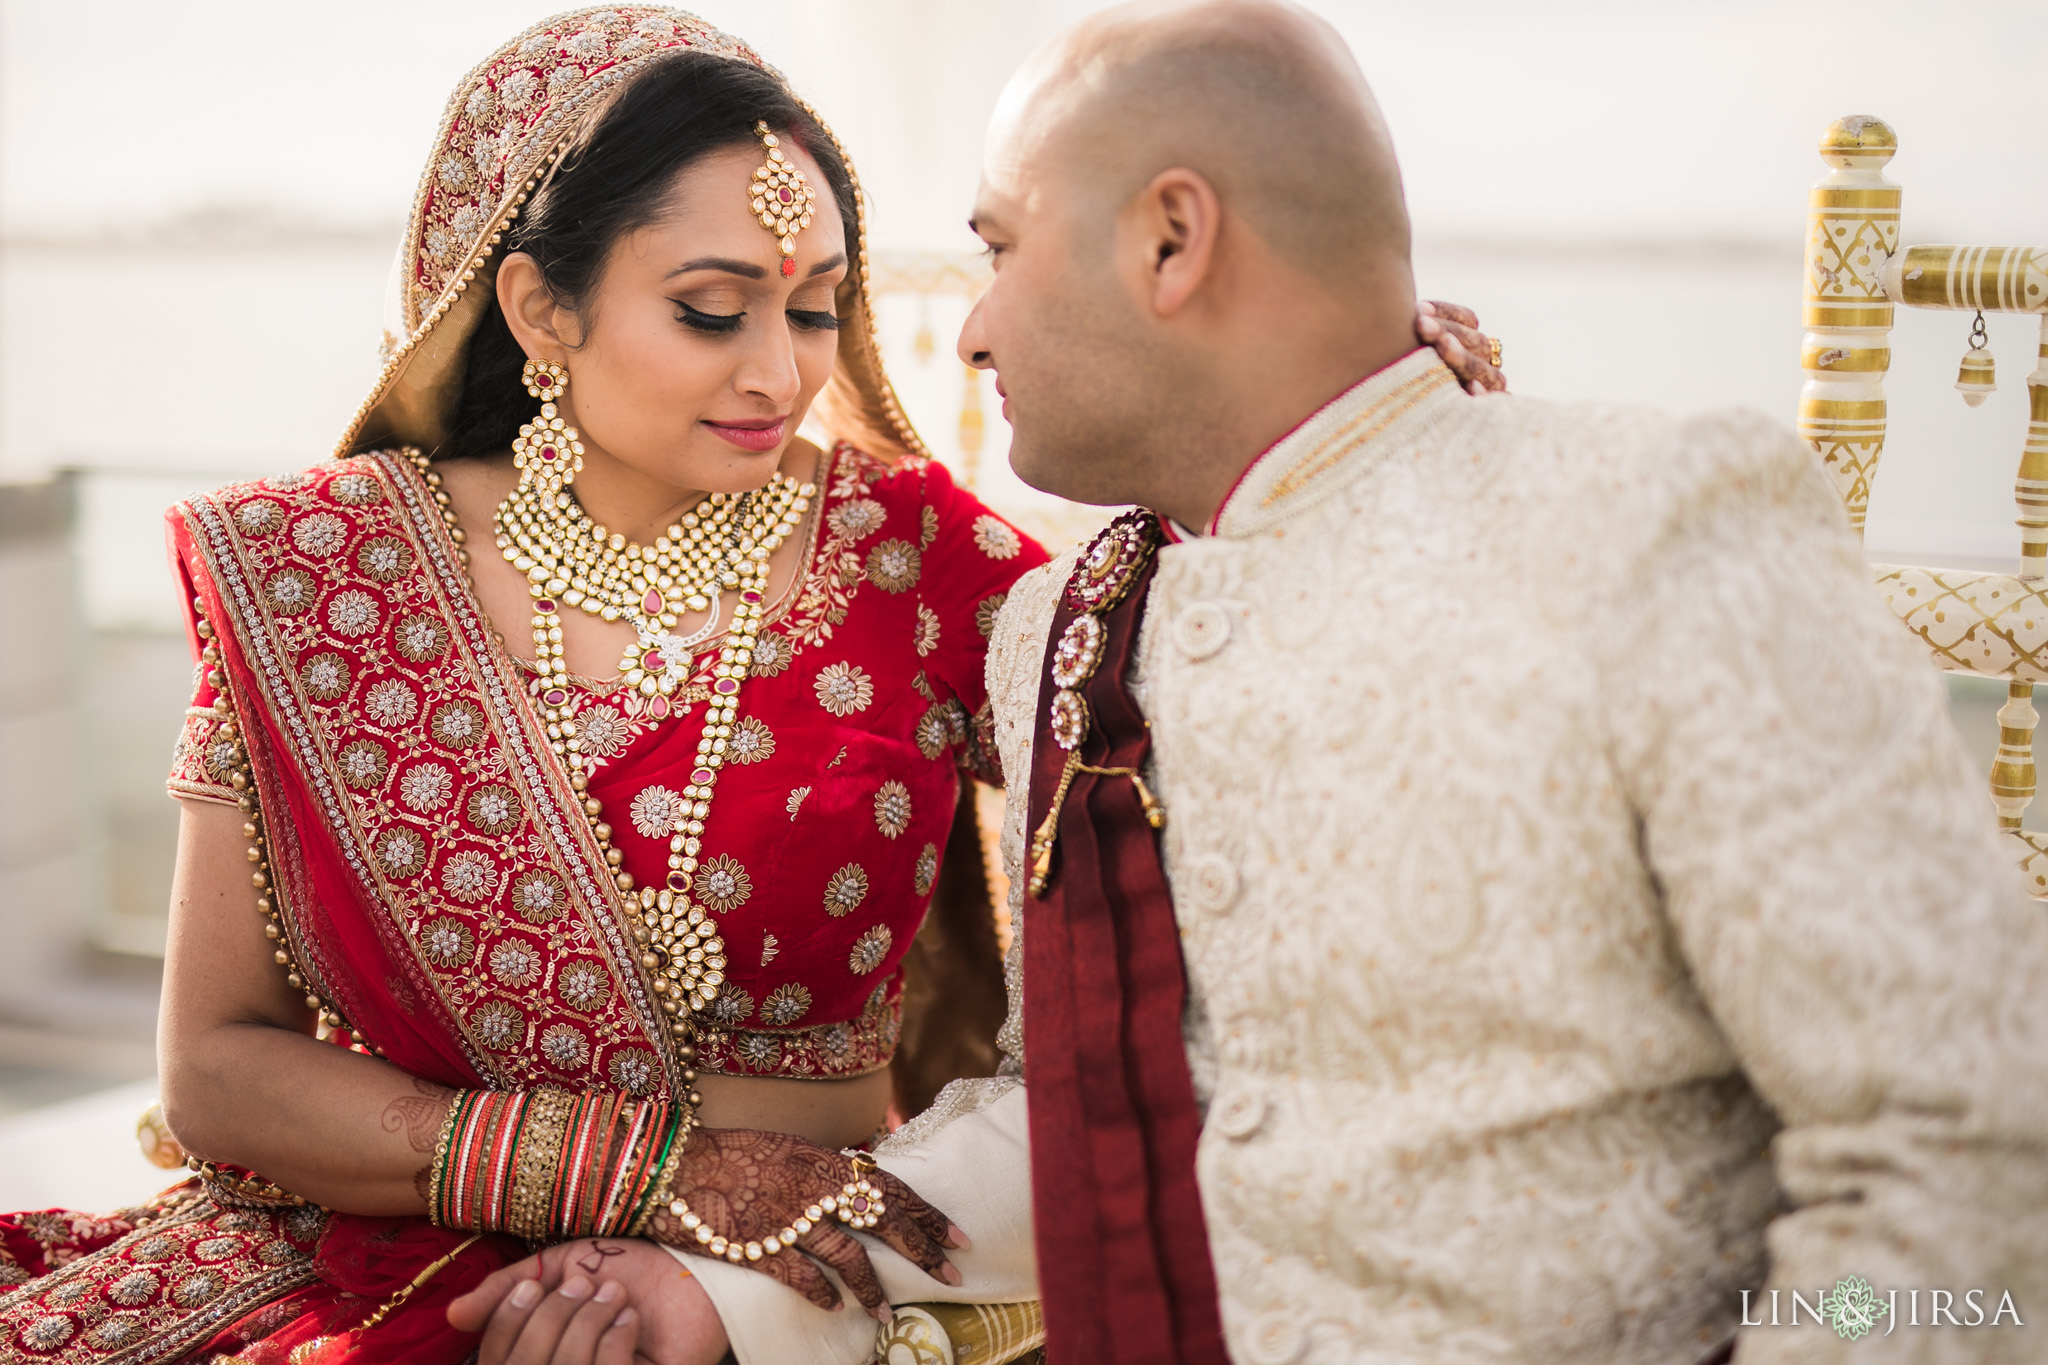 33 loews coronado bay resort indian wedding photography